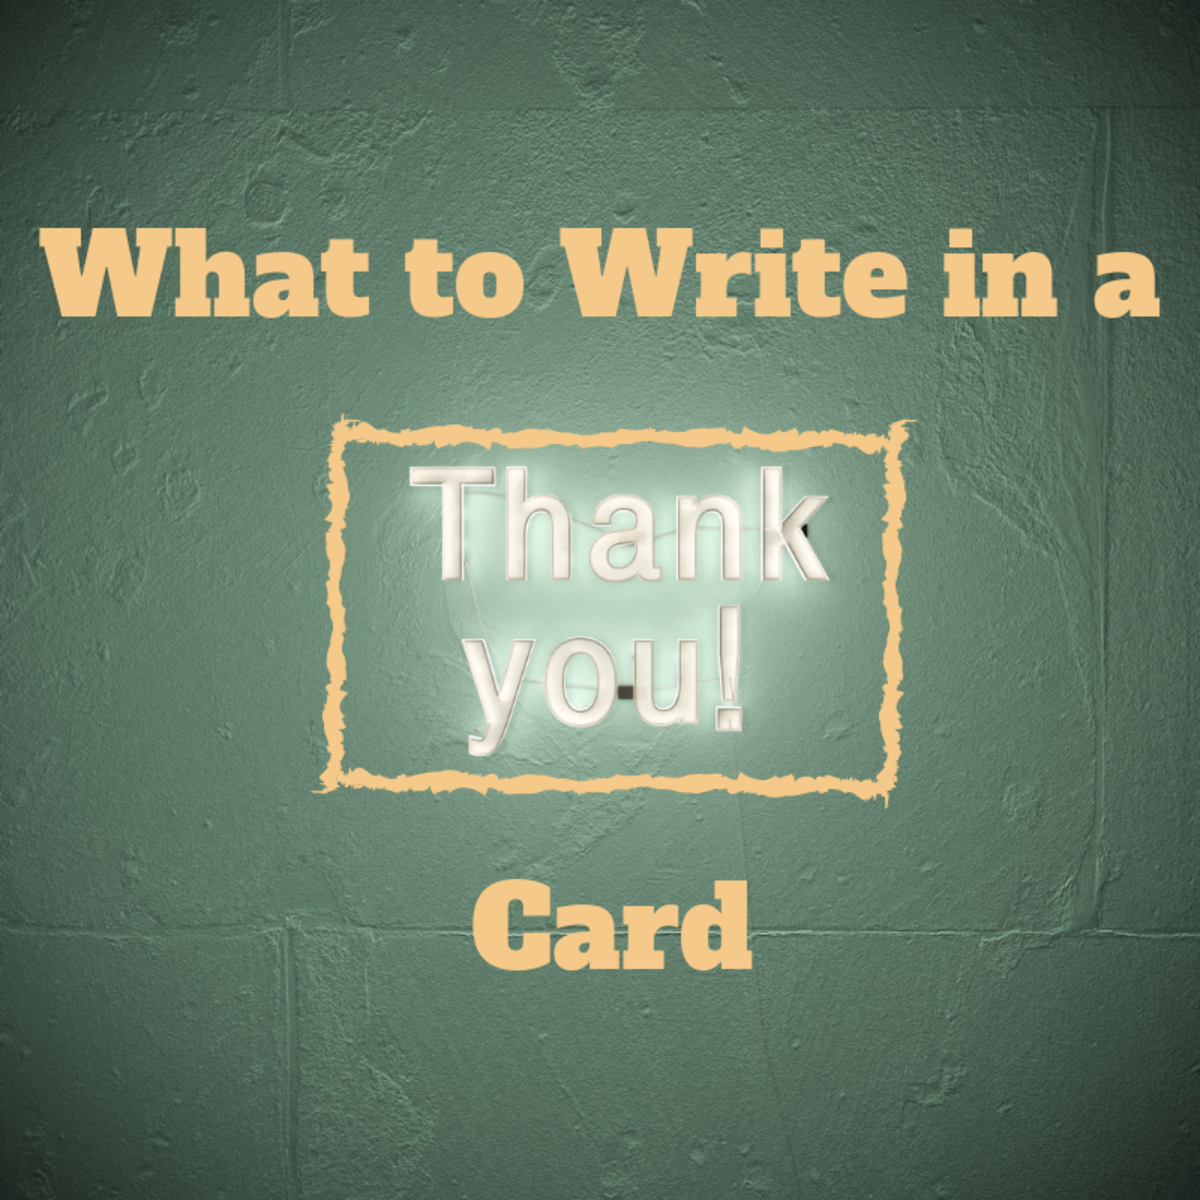 Thank you cards are a great medium through which to express gratitude for a gift, friendship, or favor.